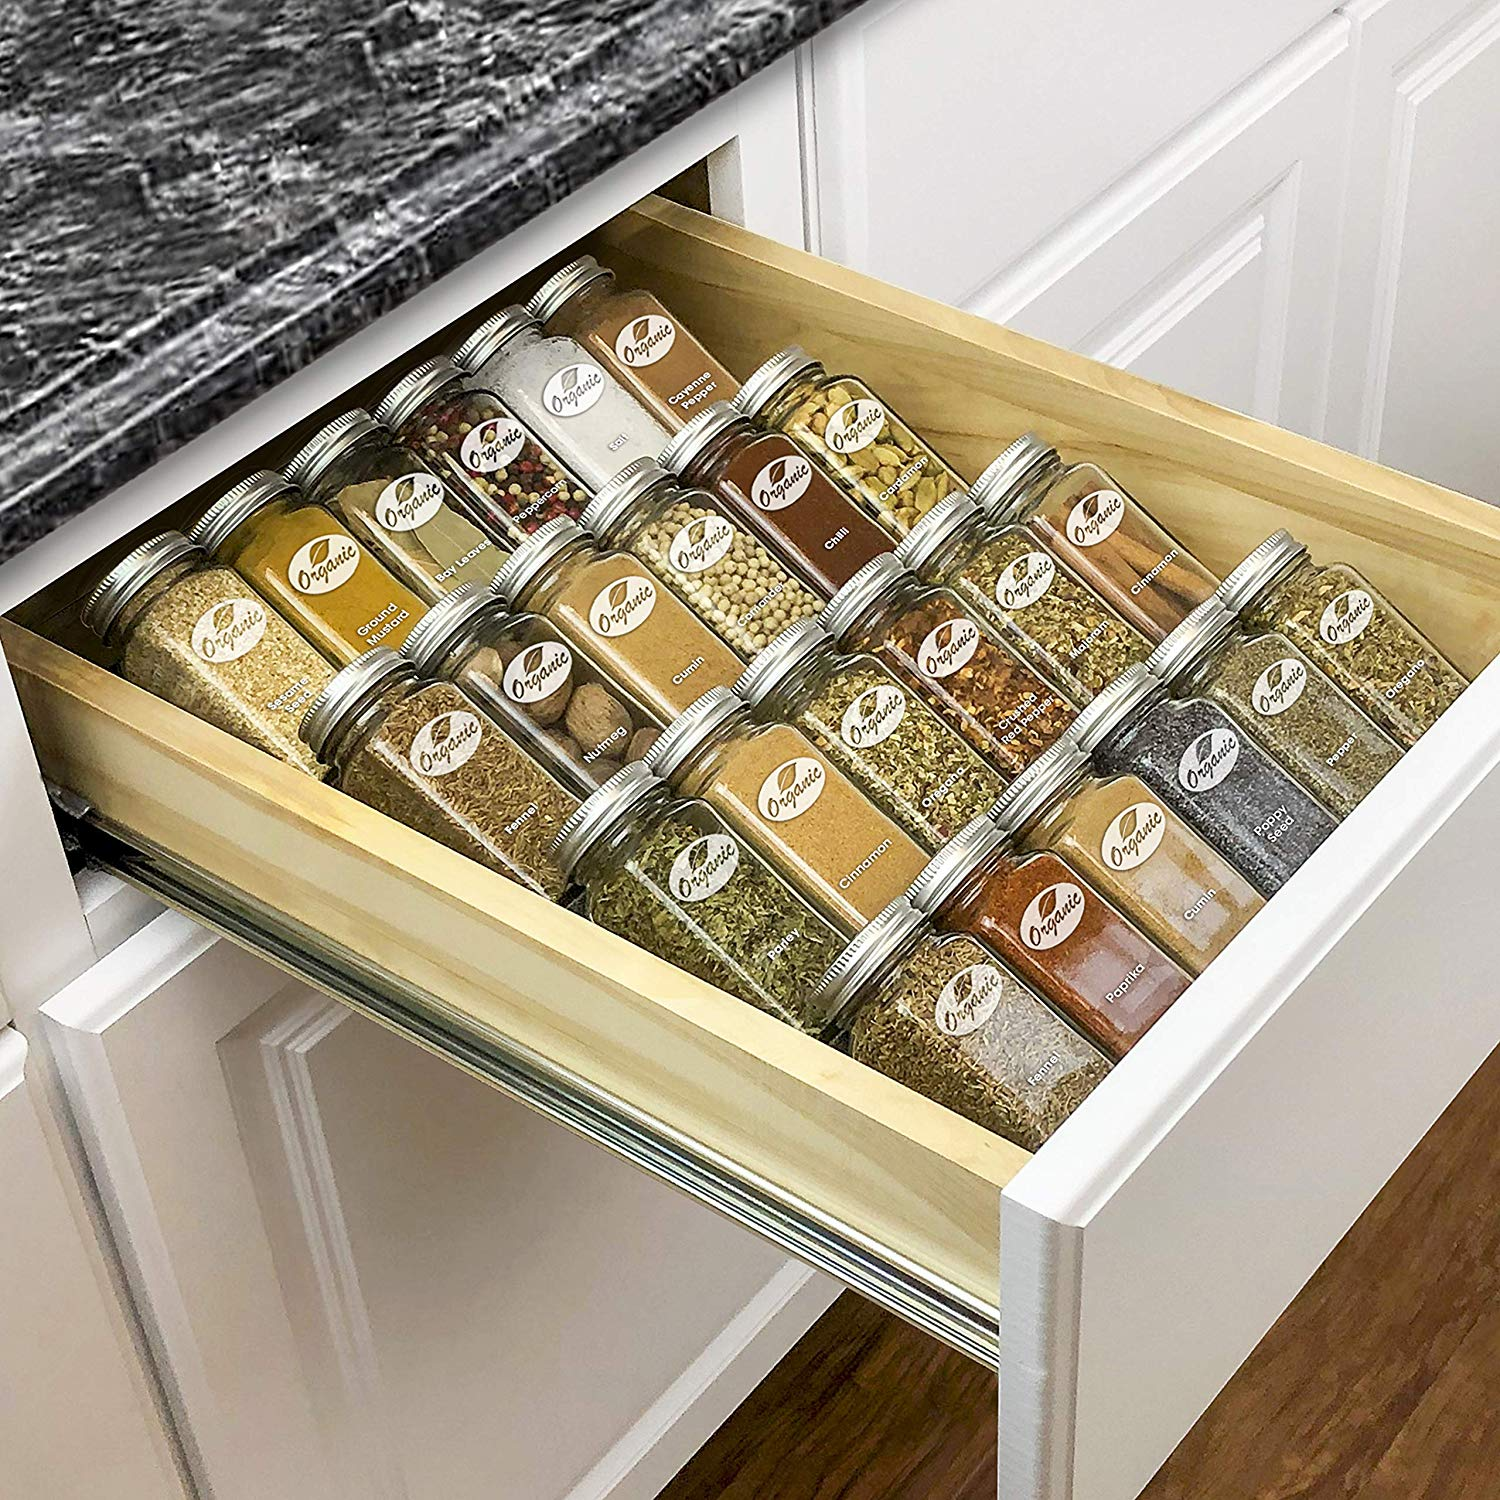 Tips on Organizing a Spice and Baking Cabinet - Pallet and ...